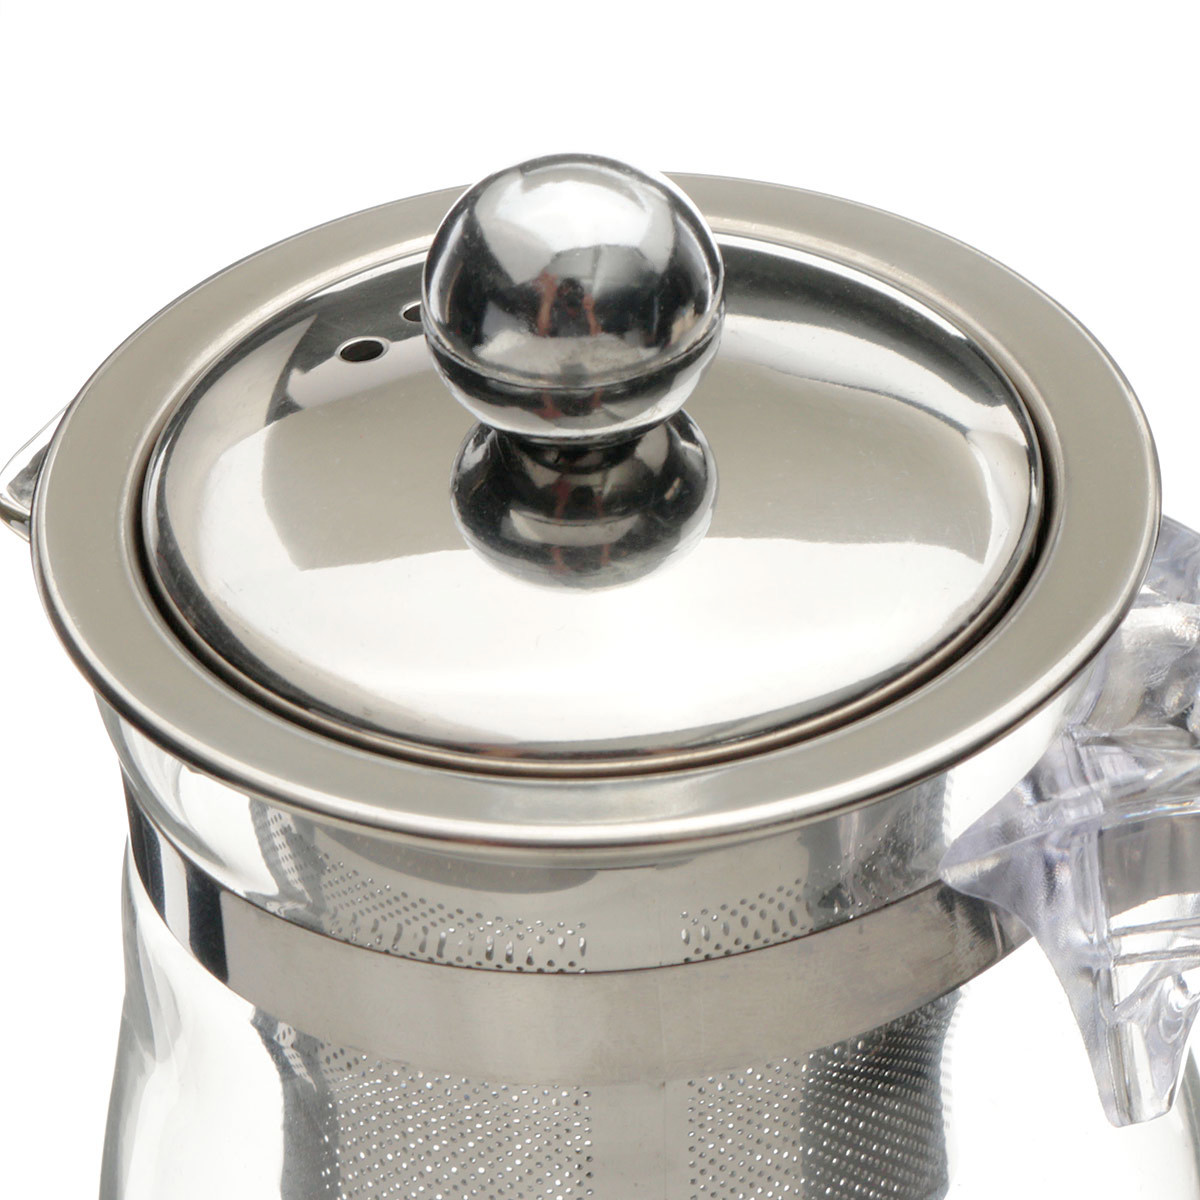 350mL Heat Resistant Clear Glass Teapot Stainless Steel Infuser Flower Tea Pot